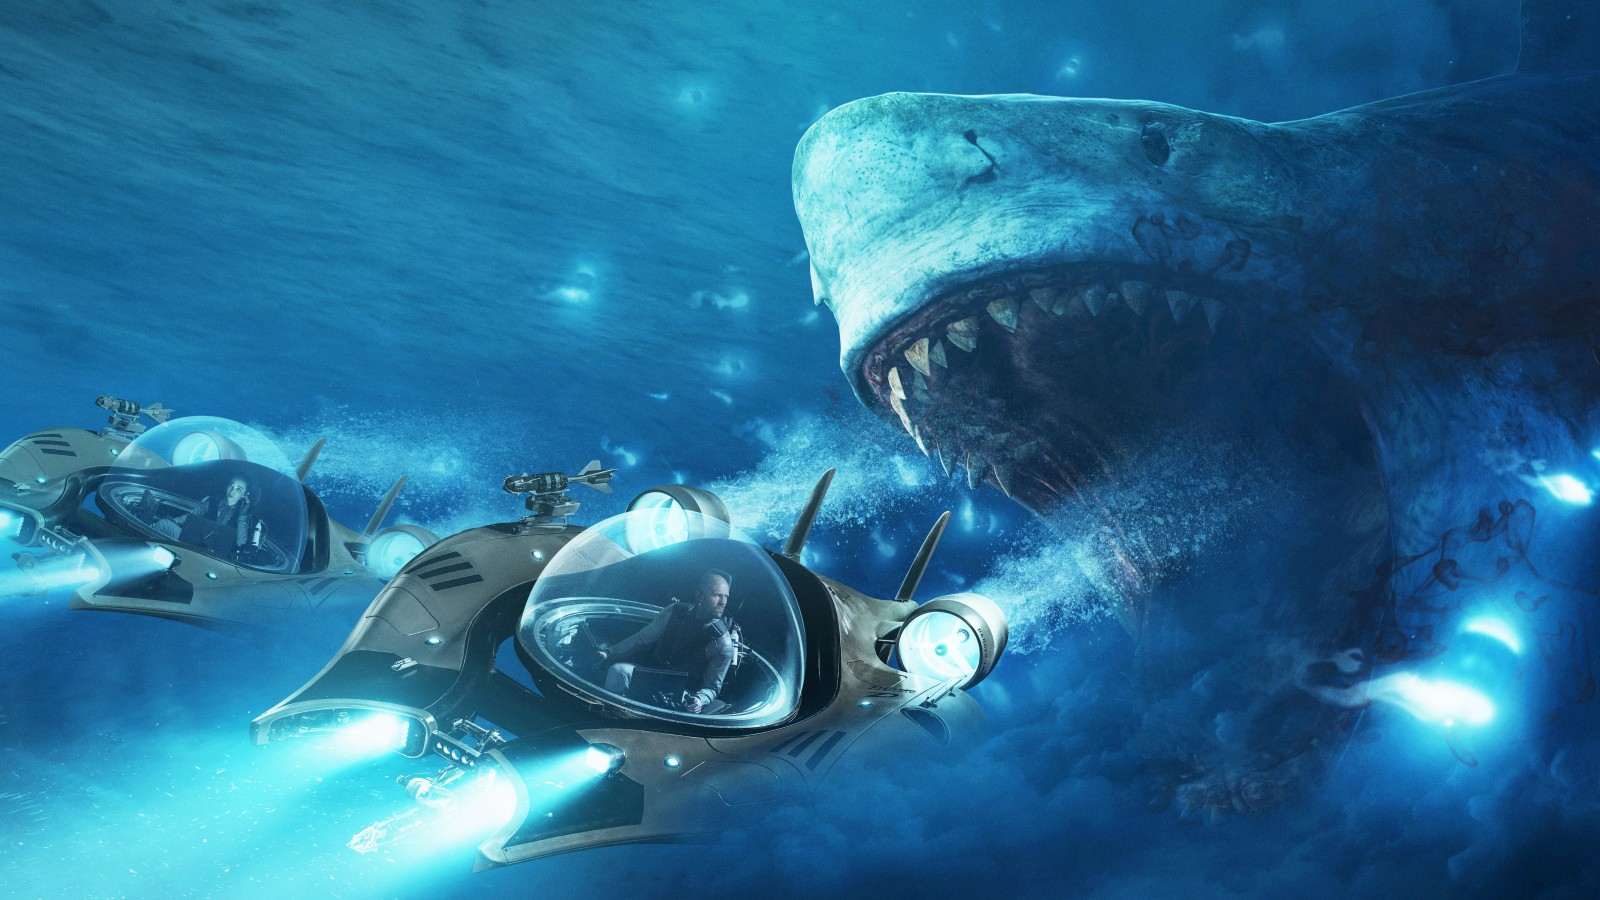 Wallpaper 3d Iphone 6 The Meg 2018 4k 8k Wallpapers Hd Wallpapers Id 24995